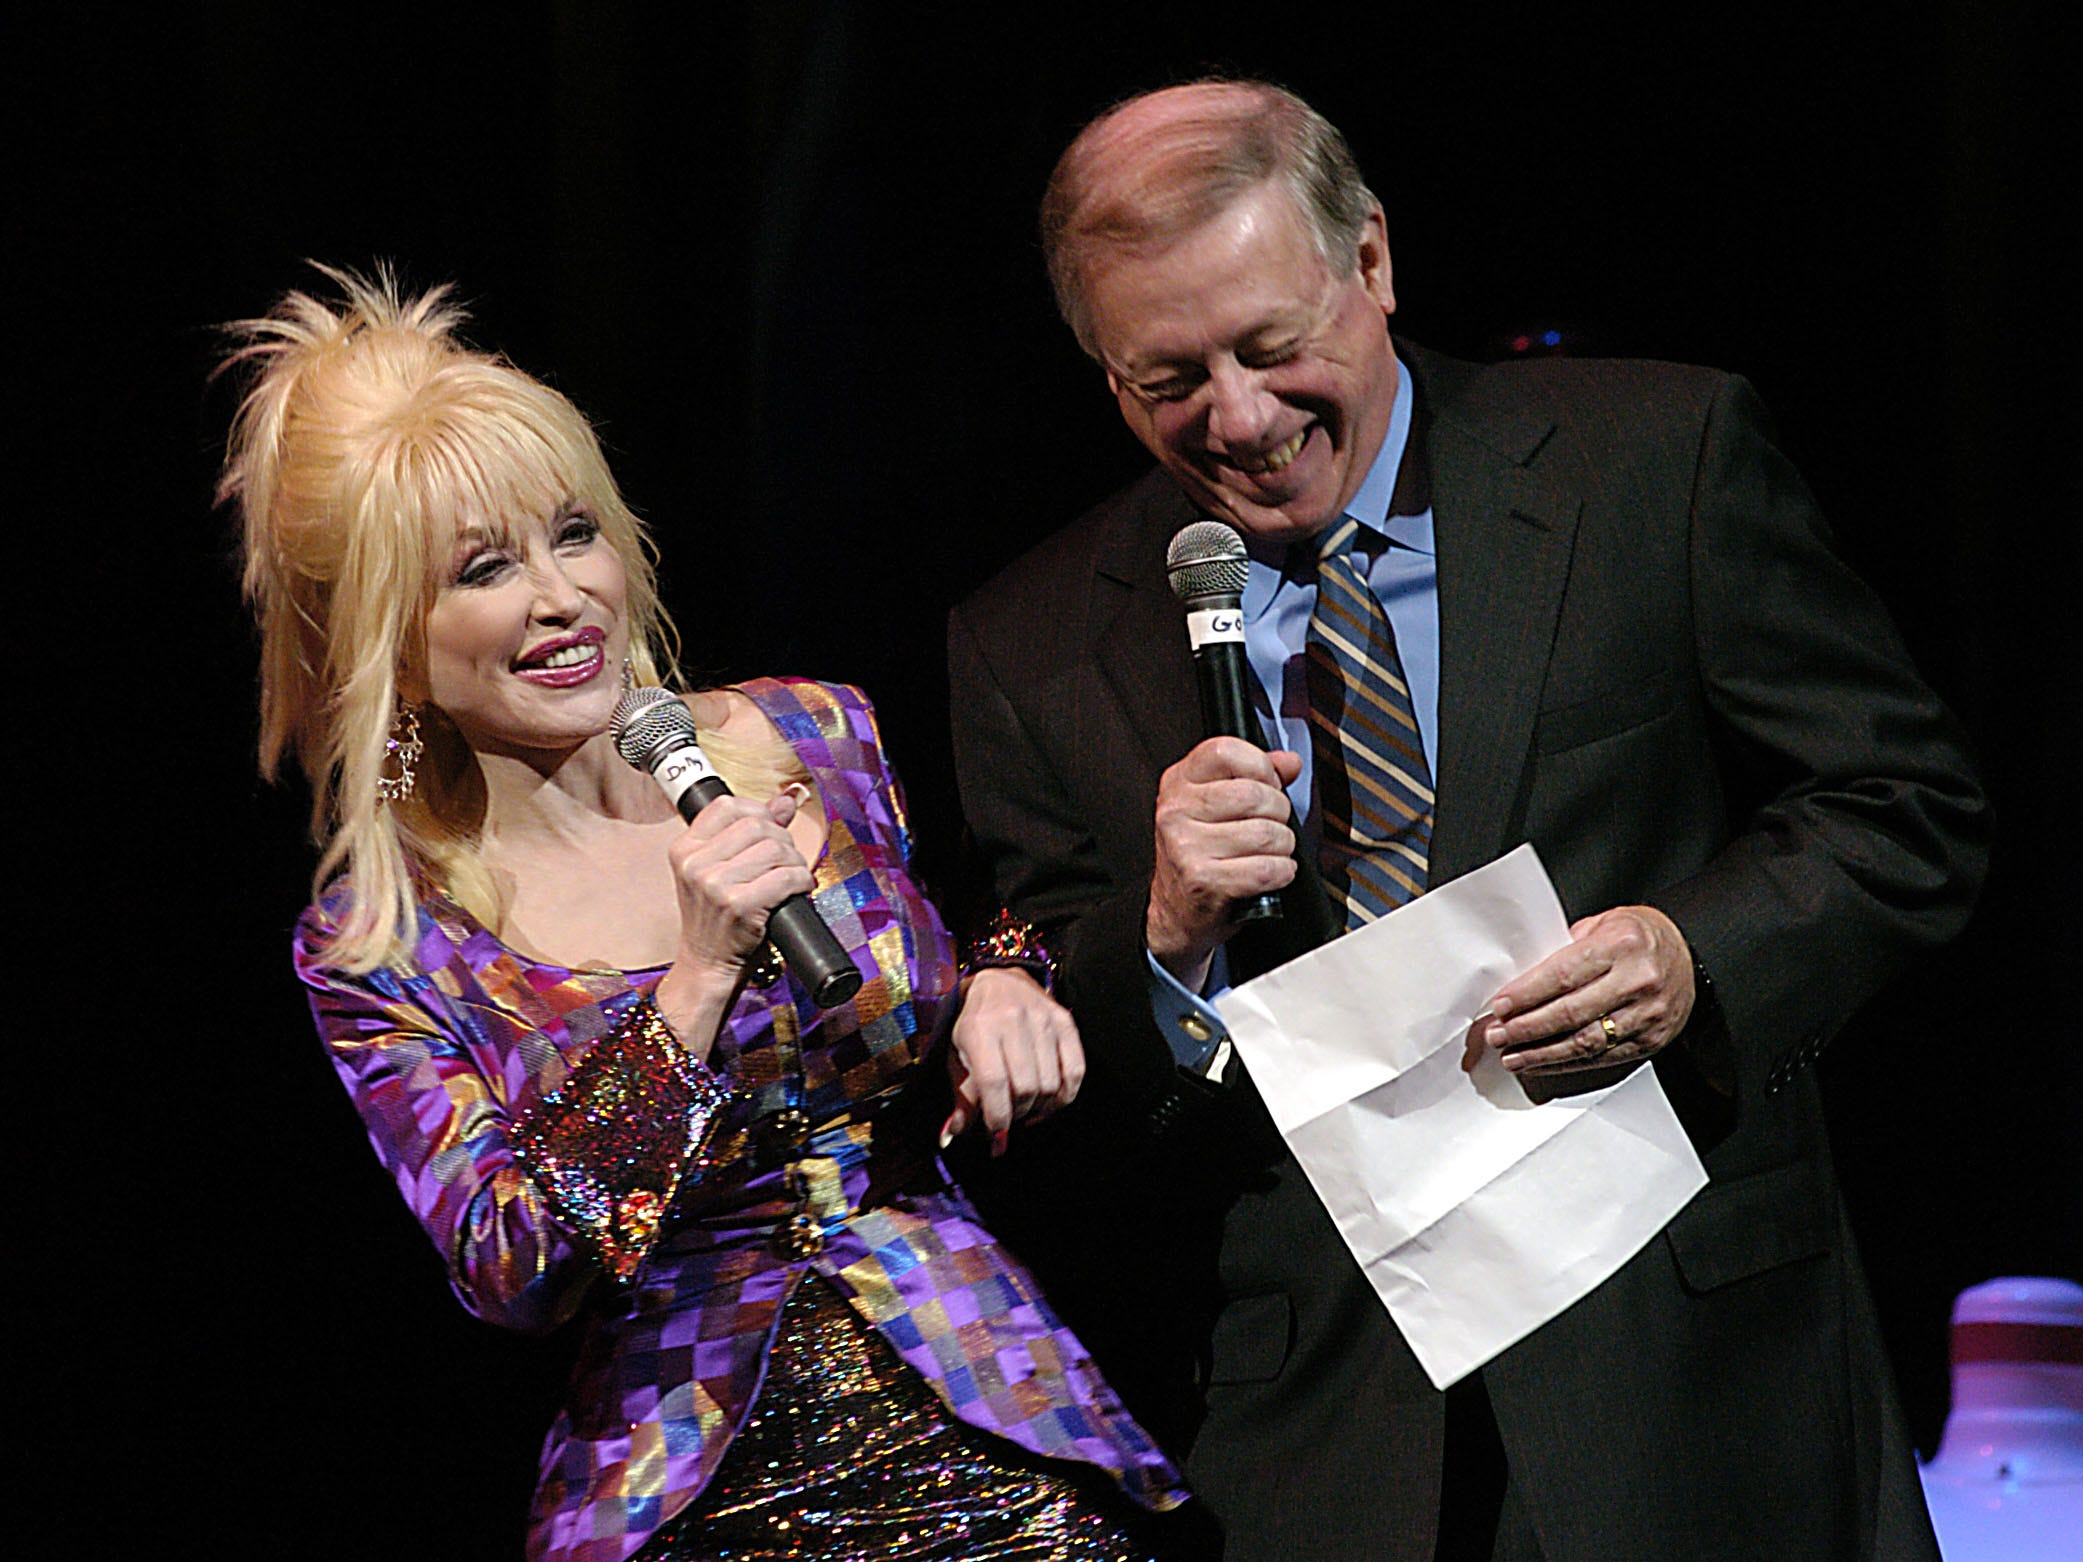 Dolly Parton embarrasses Gov. Phil Bredesen by saying she wanted to hip-bump him while they were on stage Friday at Dollywood. The Governor was at Dollywood for the introduction of Imagination Library a statewide preschool reading initiative he supports. 6/18/2004